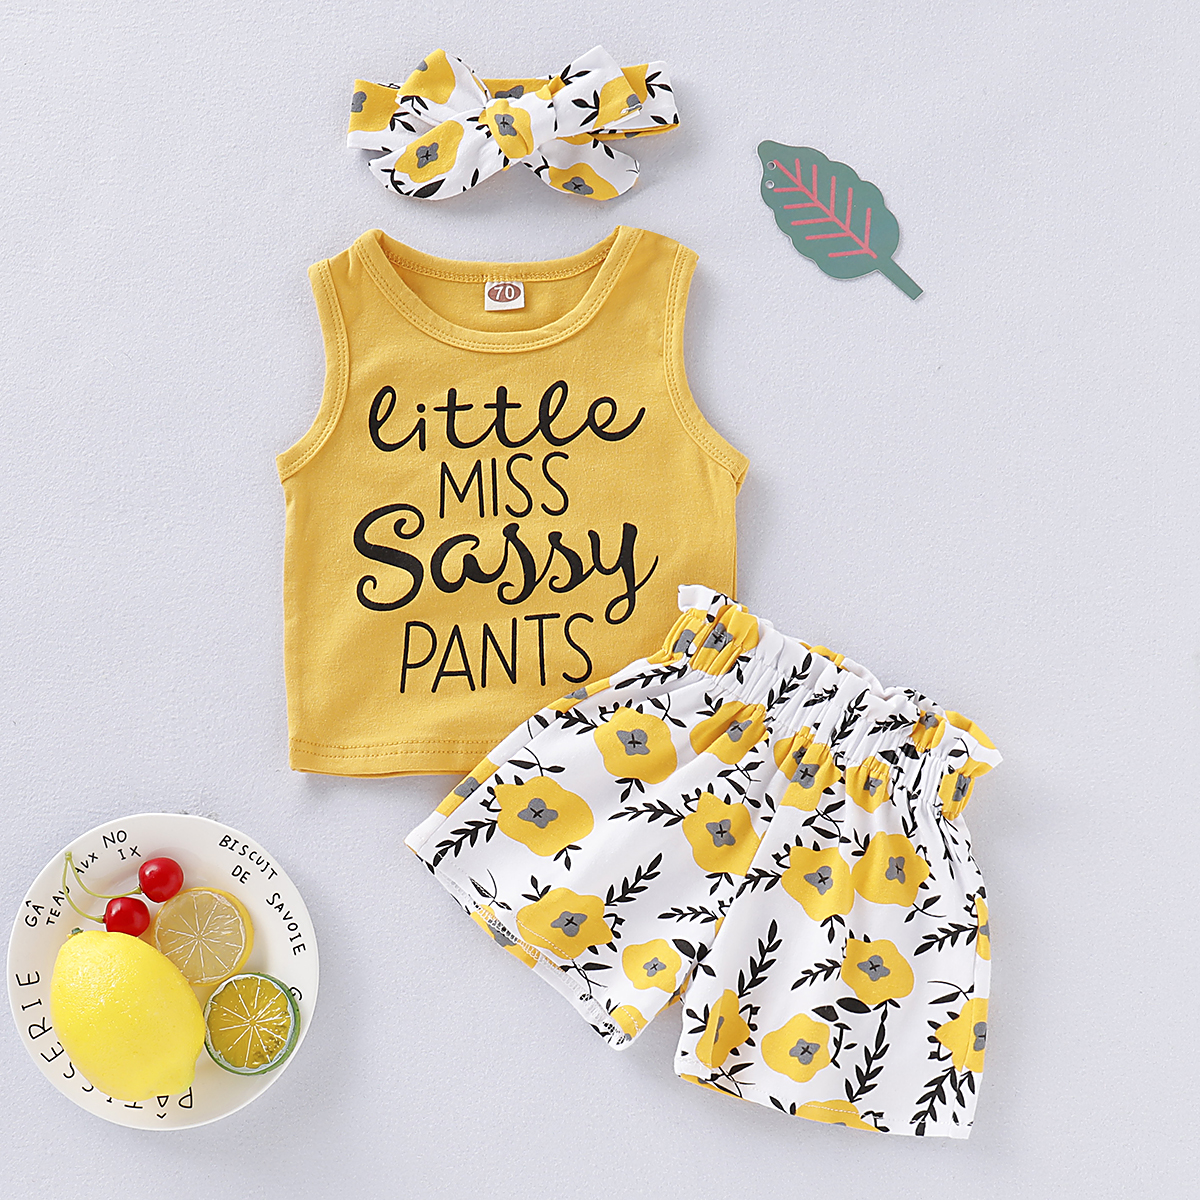 The Best 2019 Fashion Baby Clothes Short Sleeve Infant Kid Baby Girl Floral Big Bow Top T-shirt Short Pp Pants Outfit Summer Set 0-24 M Big Clearance Sale Clothing Sets Mother & Kids